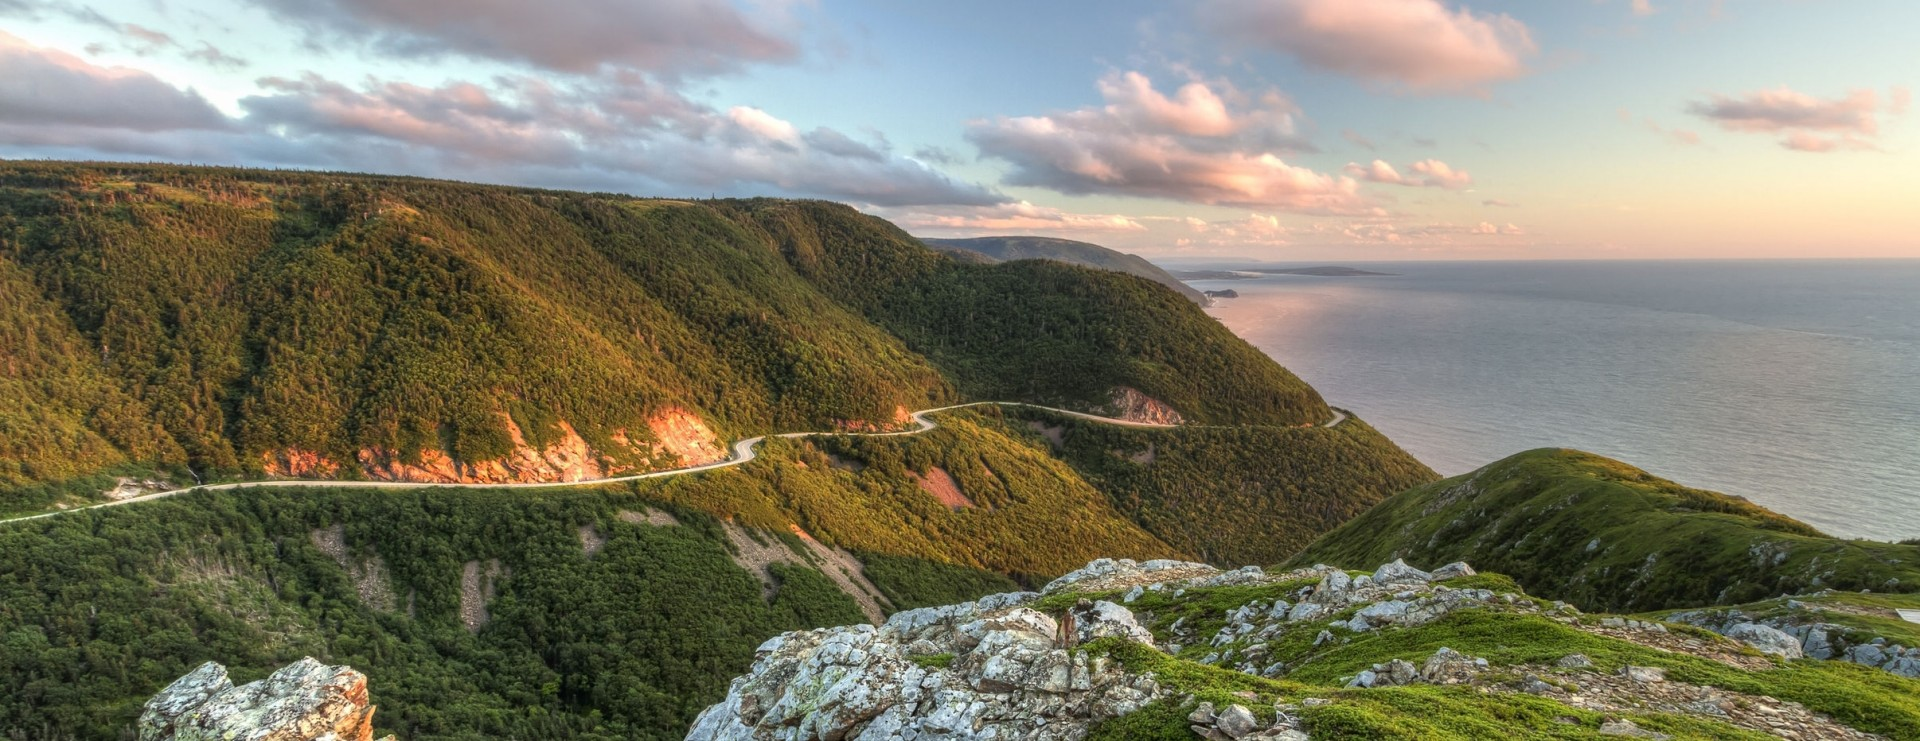 Skyline Trail, Cape Breton Highlands National Park Nova Scotia